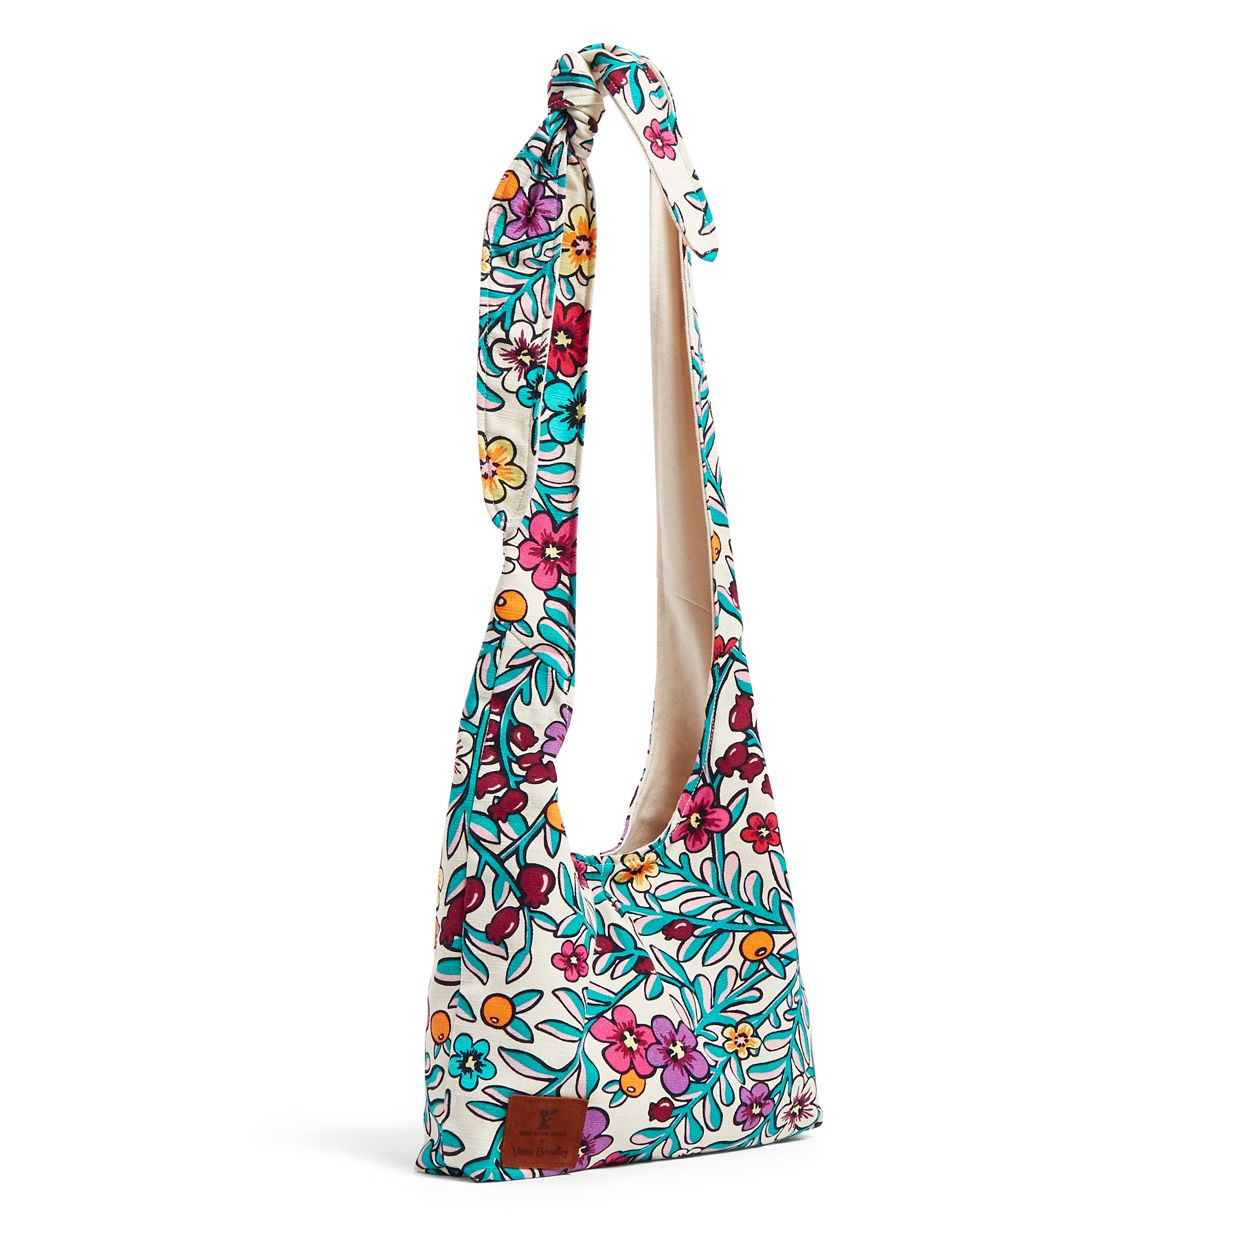 ... Image of New Hope Girls Hobo Bag in Kaleidoscope ... f40c0ecb211de